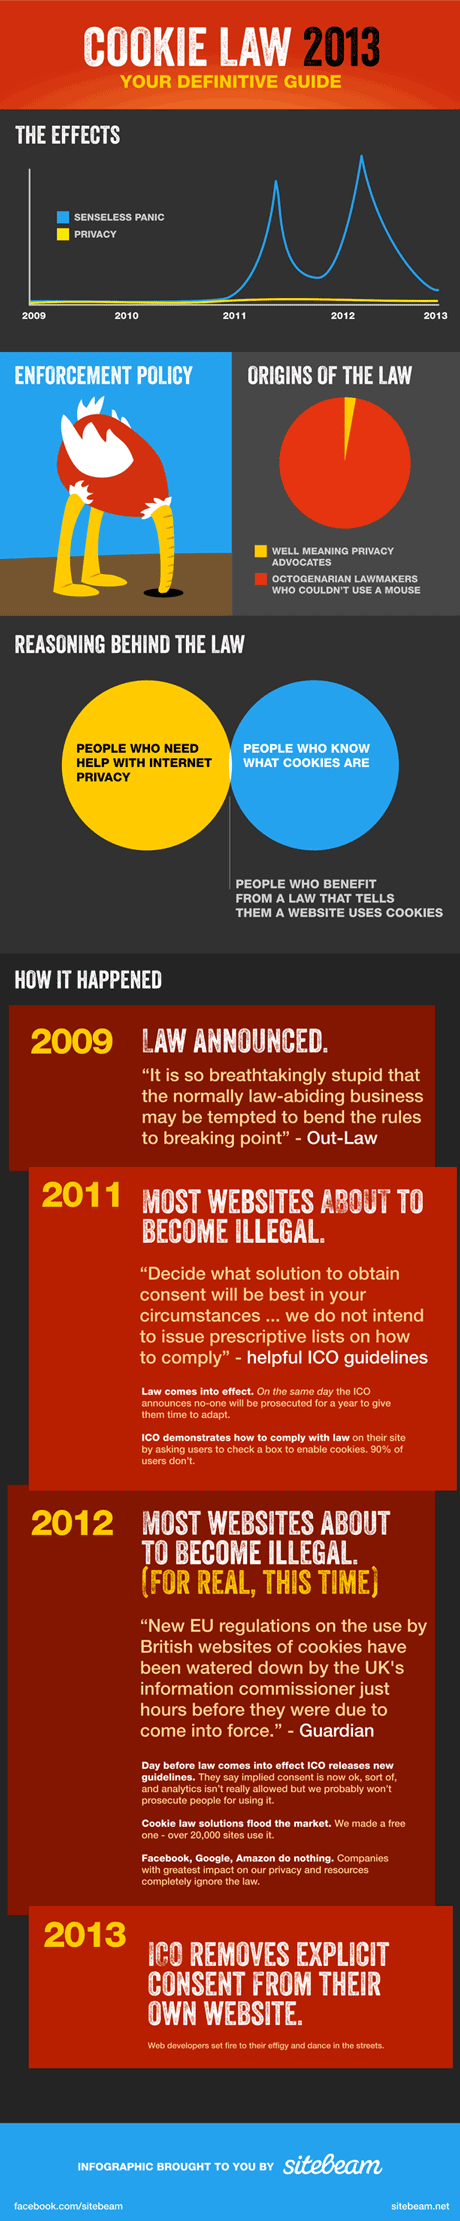 The Cookie Law 2013 - Your Definitive Guide by Sitebeam